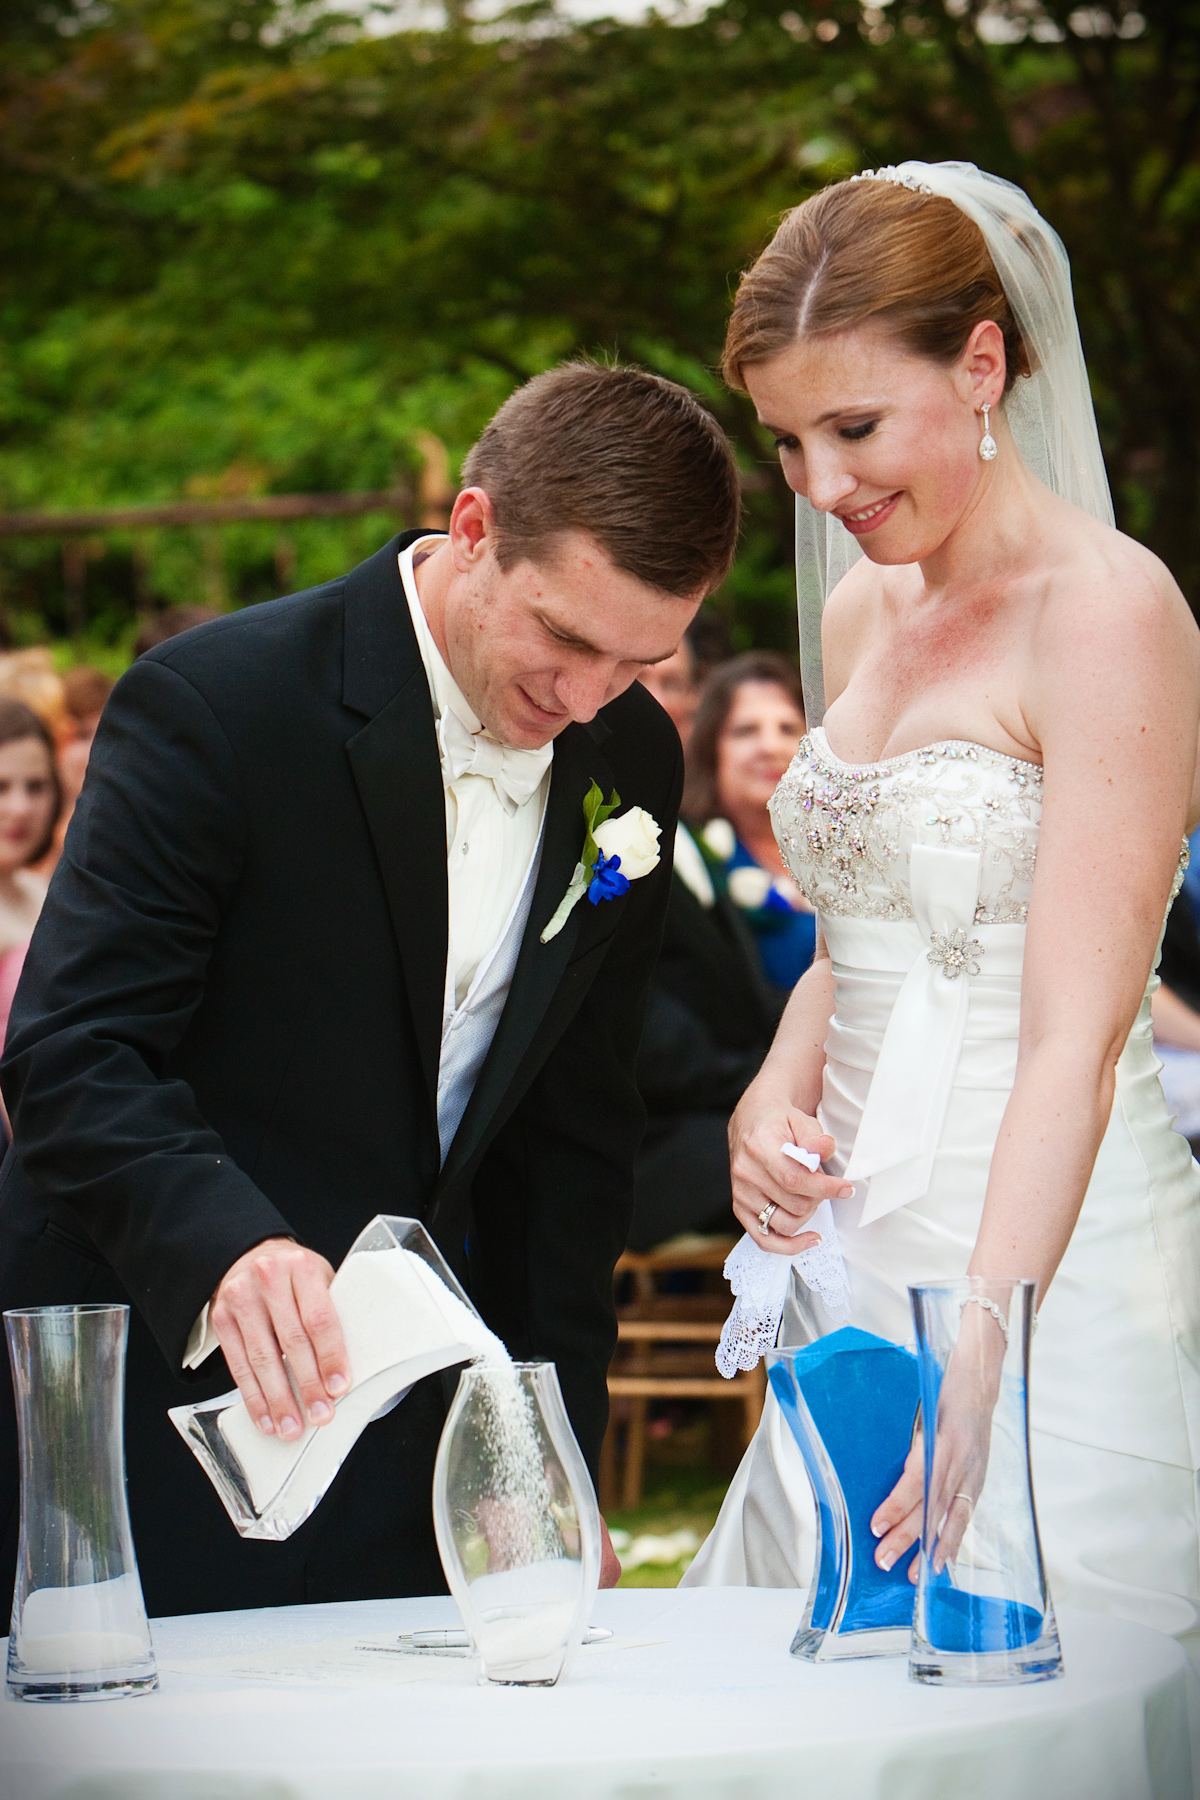 Ceremony, Flowers & Decor, white, blue, Park, Sand, Outside